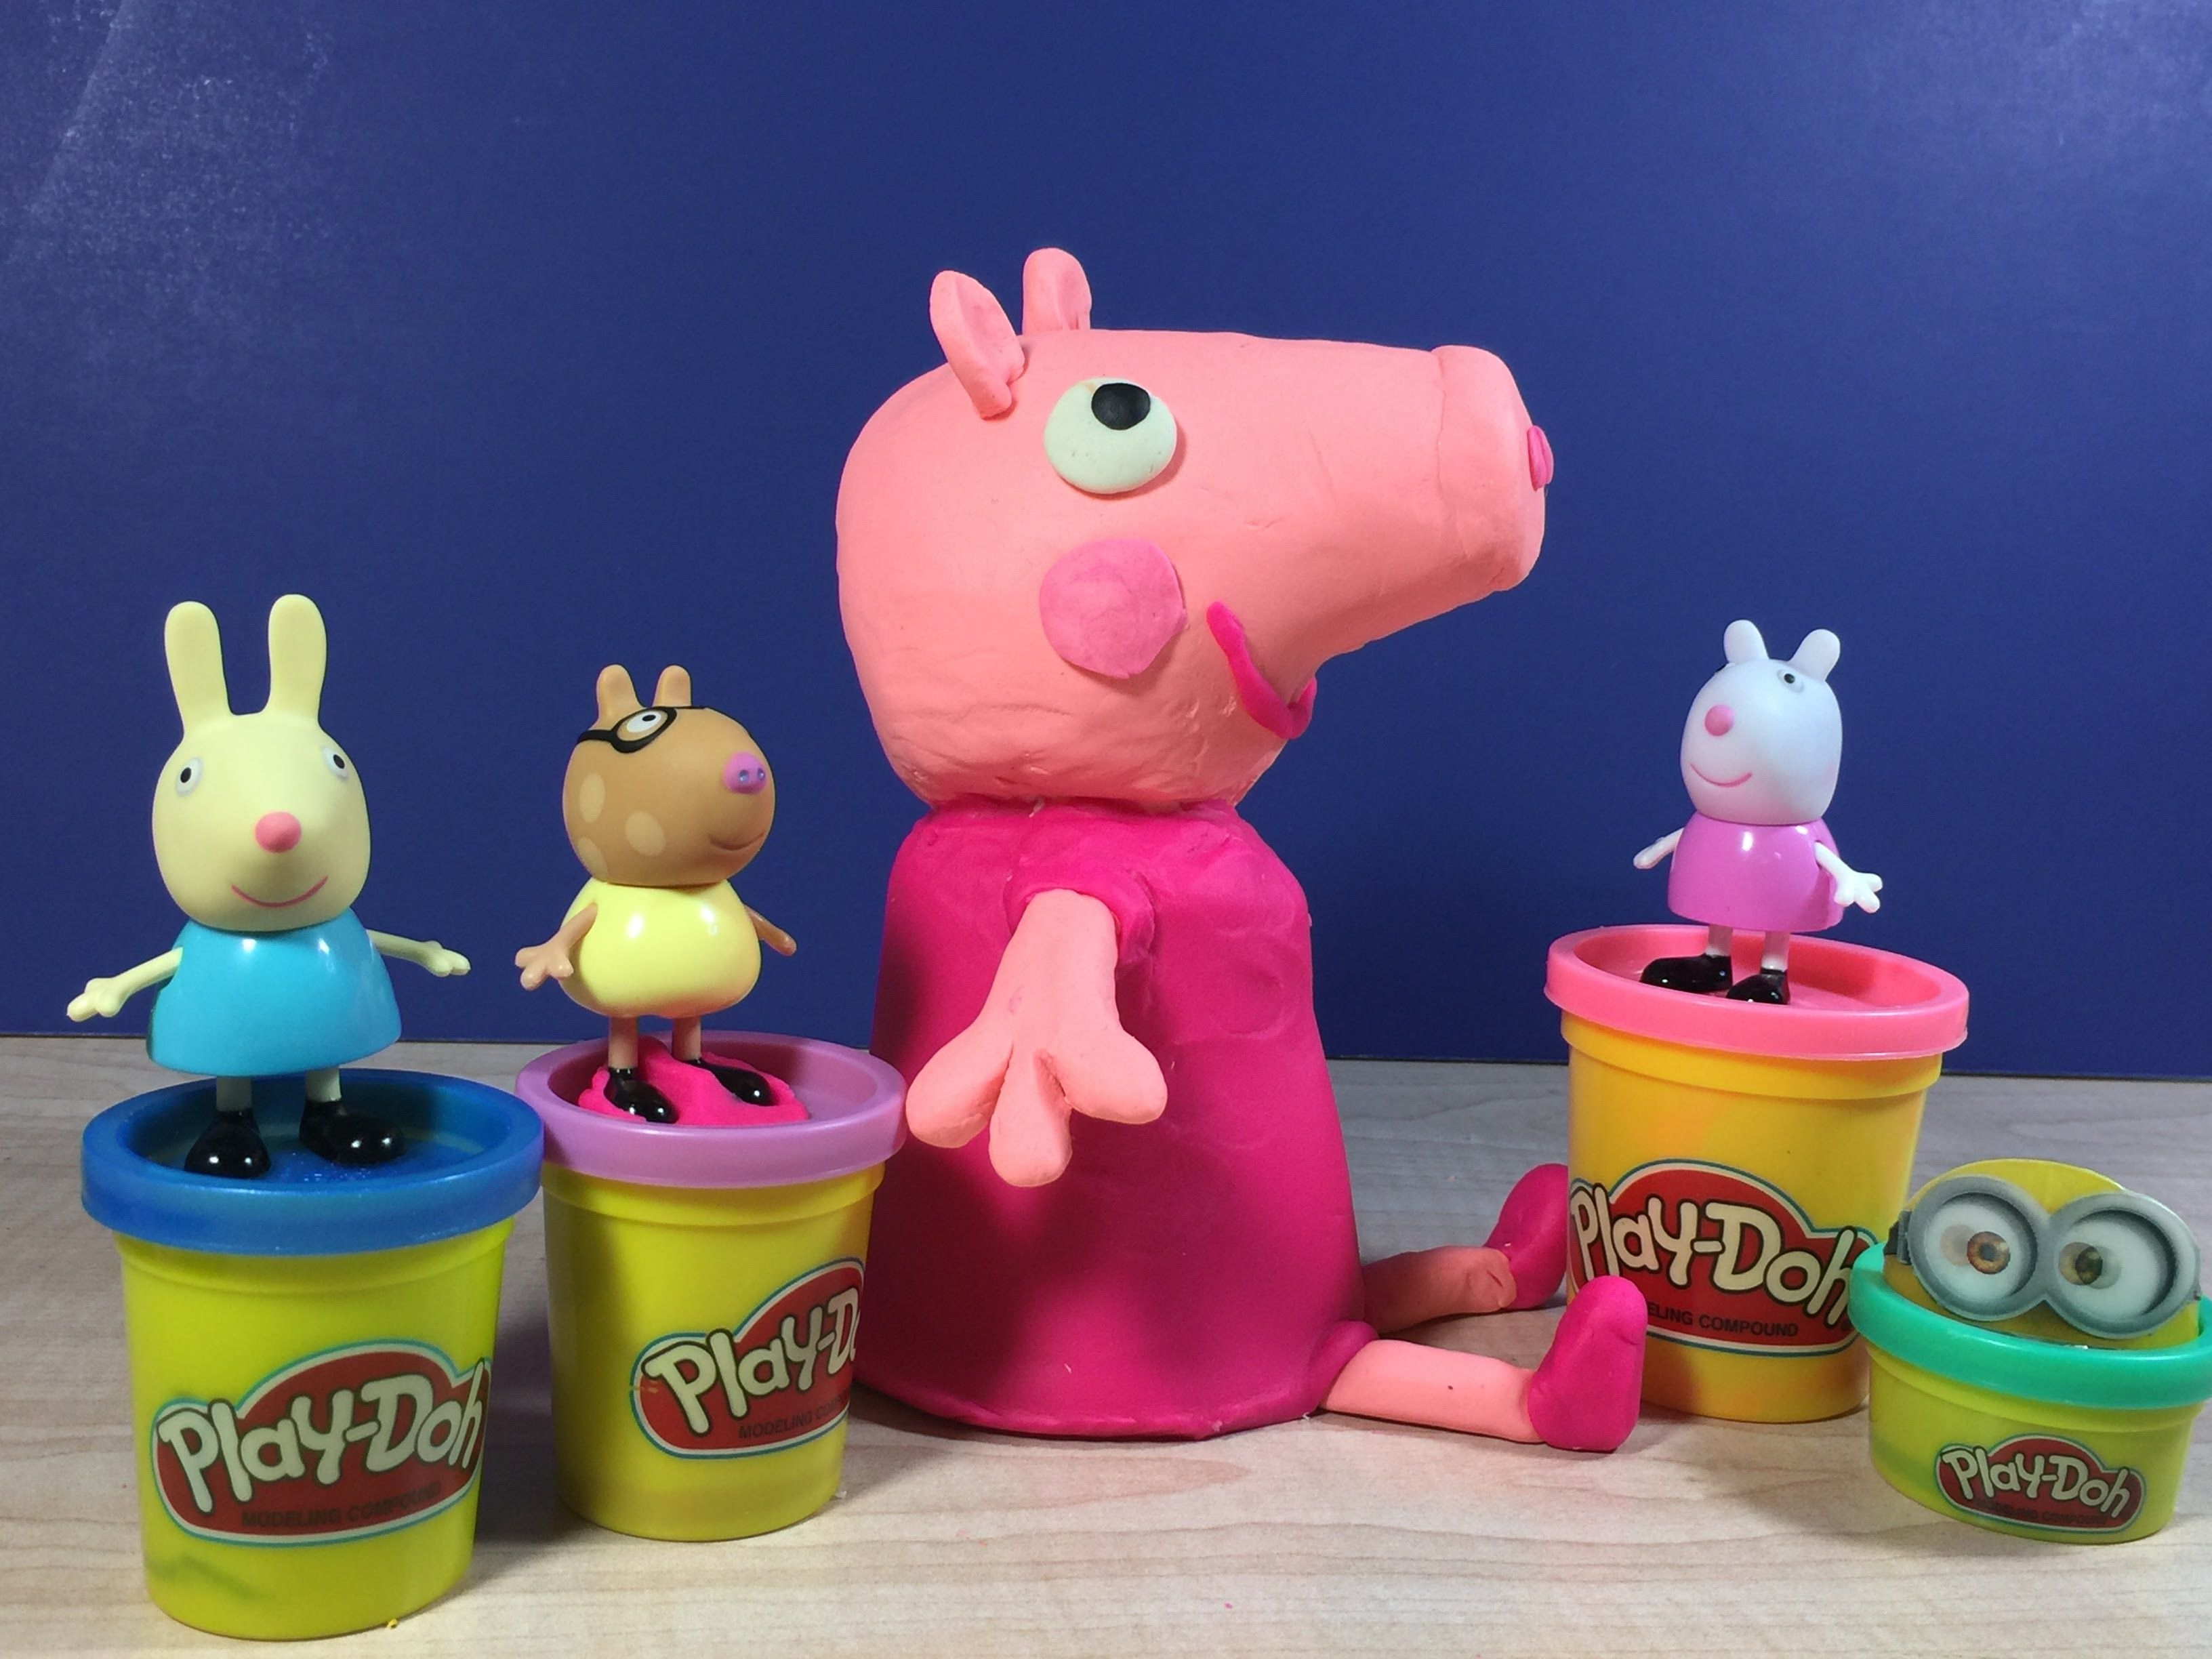 Peppa Pig Short Video Made With Play Doh Plus Disney And Minions Blind Surprise Bags Play Doh Plus Peppa Pig Play Doh [ 2448 x 3264 Pixel ]